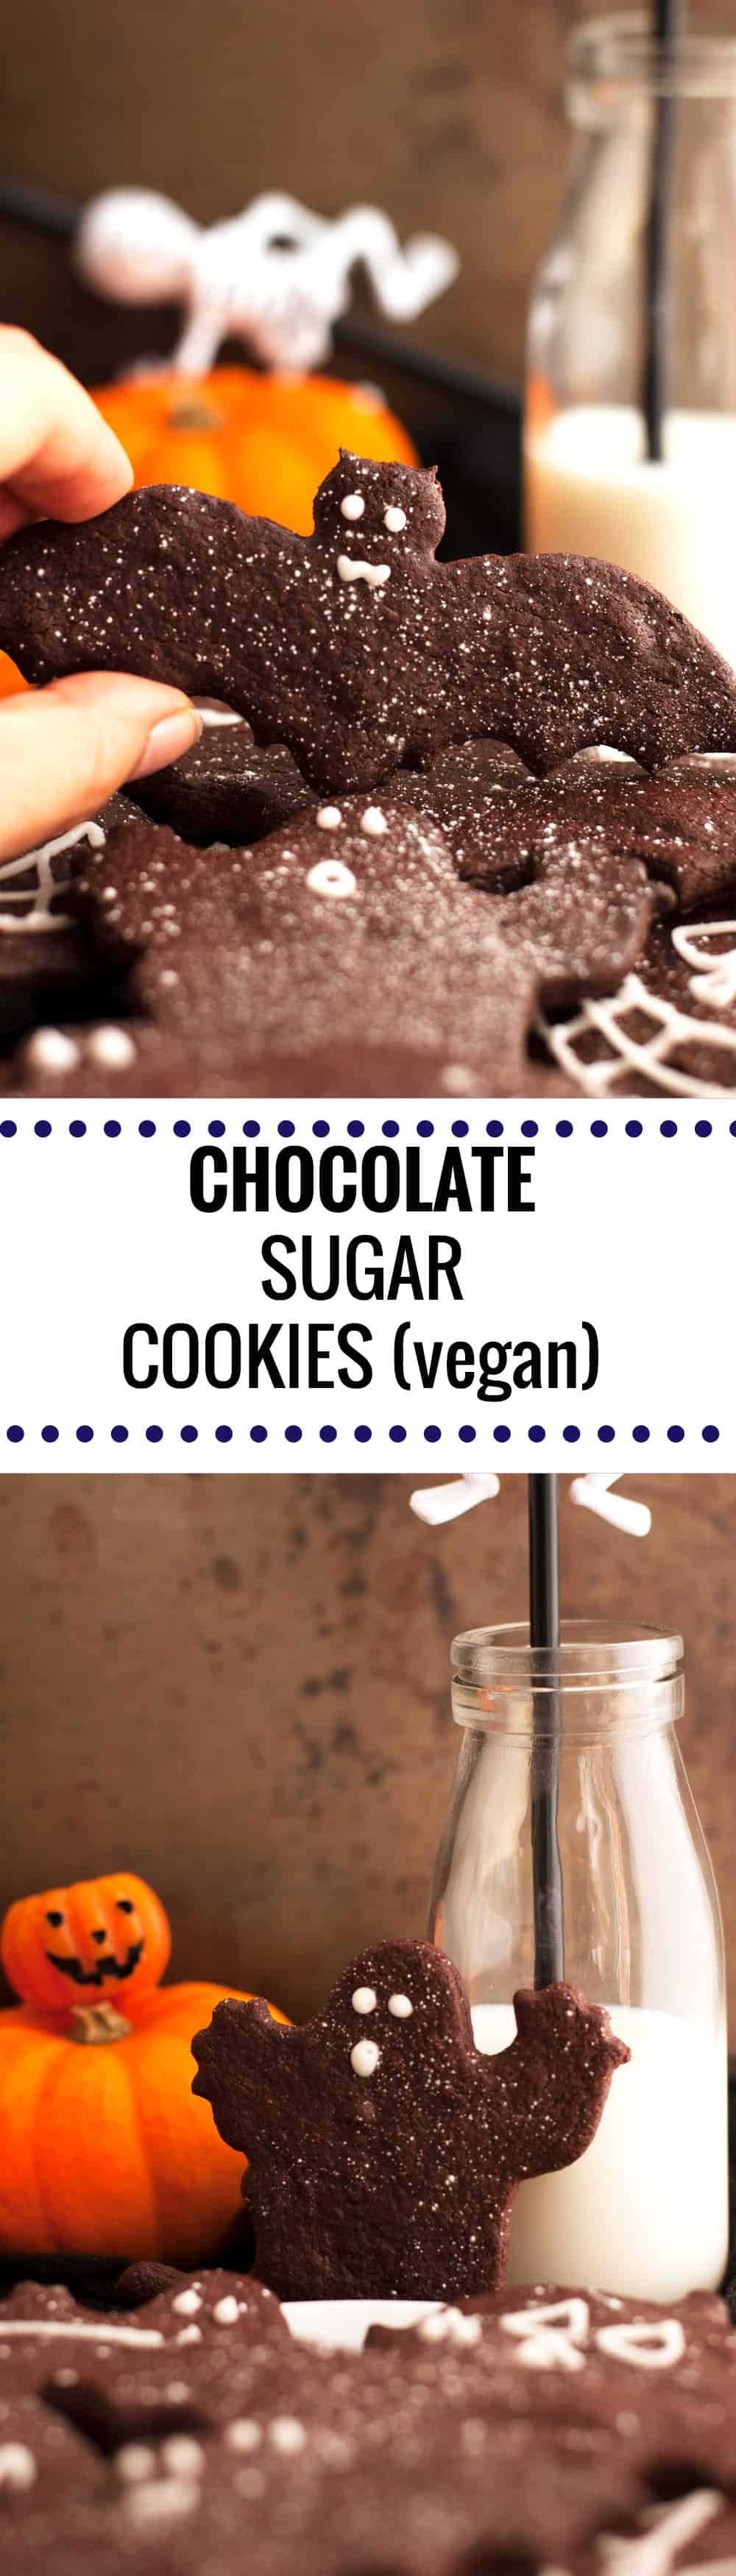 Delicious recipe for chocolate sugar cookies! They are 100% vegan, super easy to make and really fun to decorate! Perfect for holidays! | via@ annabanana.co